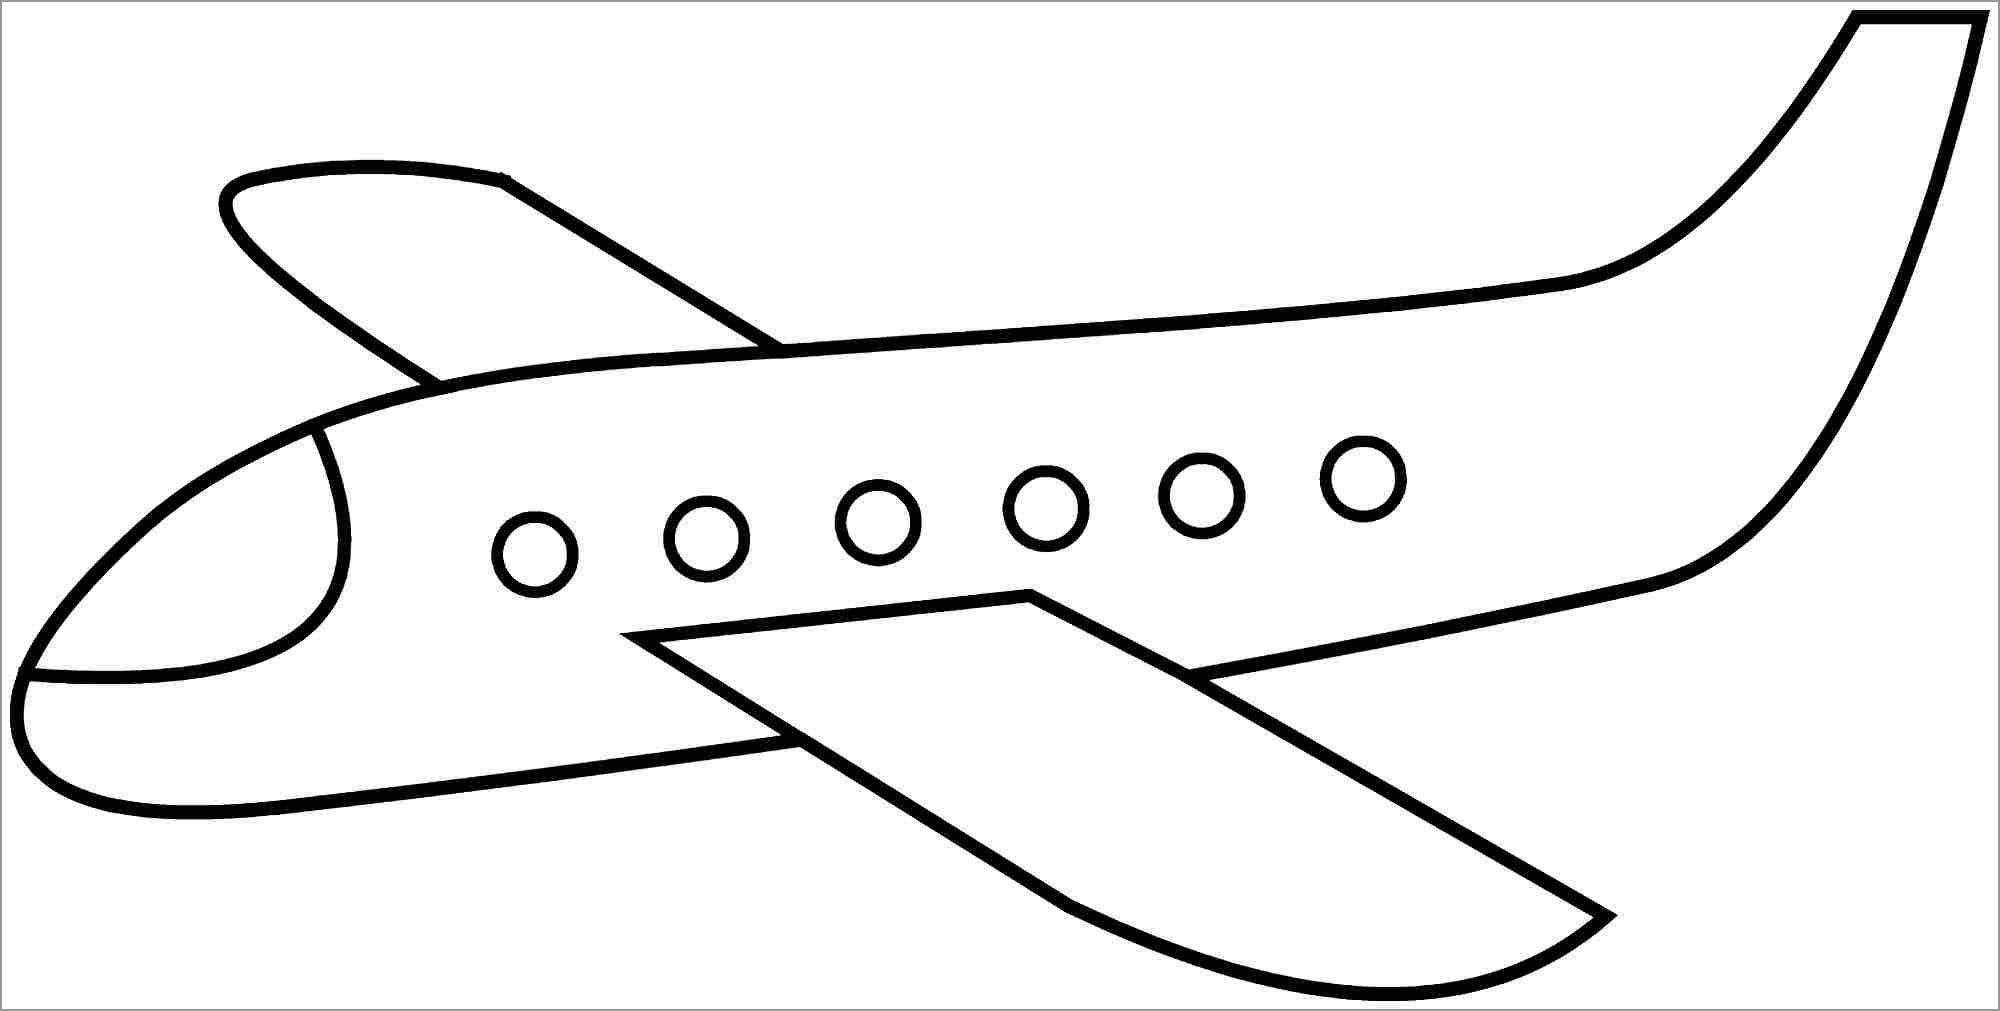 simple airplane coloring for kids coloringbay crafts to do at home oline christmas coloring pages Airplane Coloring Page